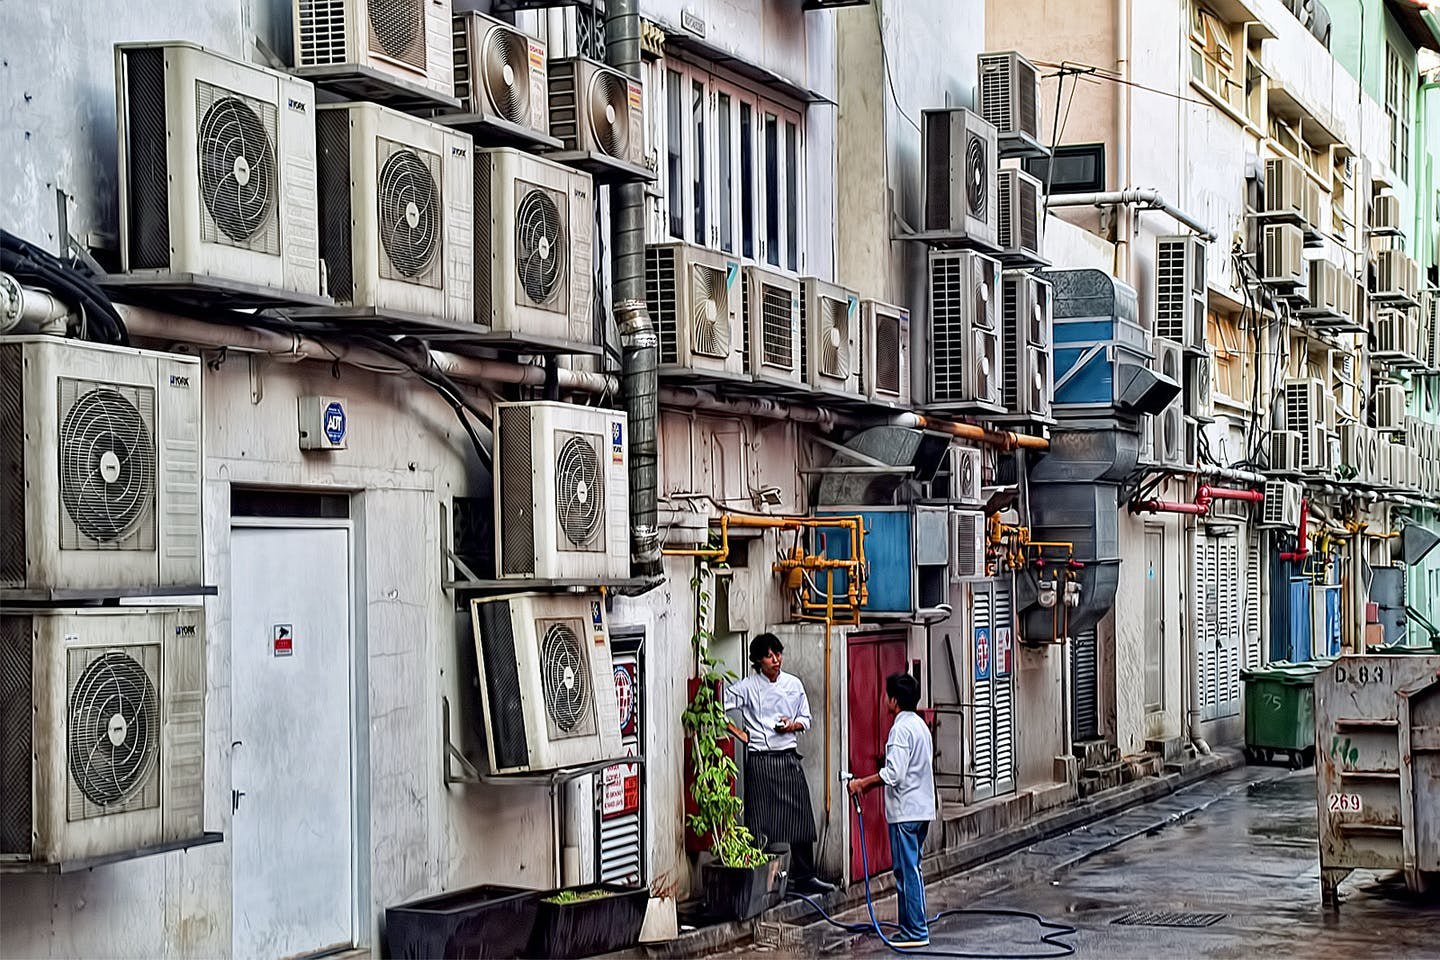 Air conditioner compressors occupy almost all the open space available on the wall of a building in Boat Quay, Singapore